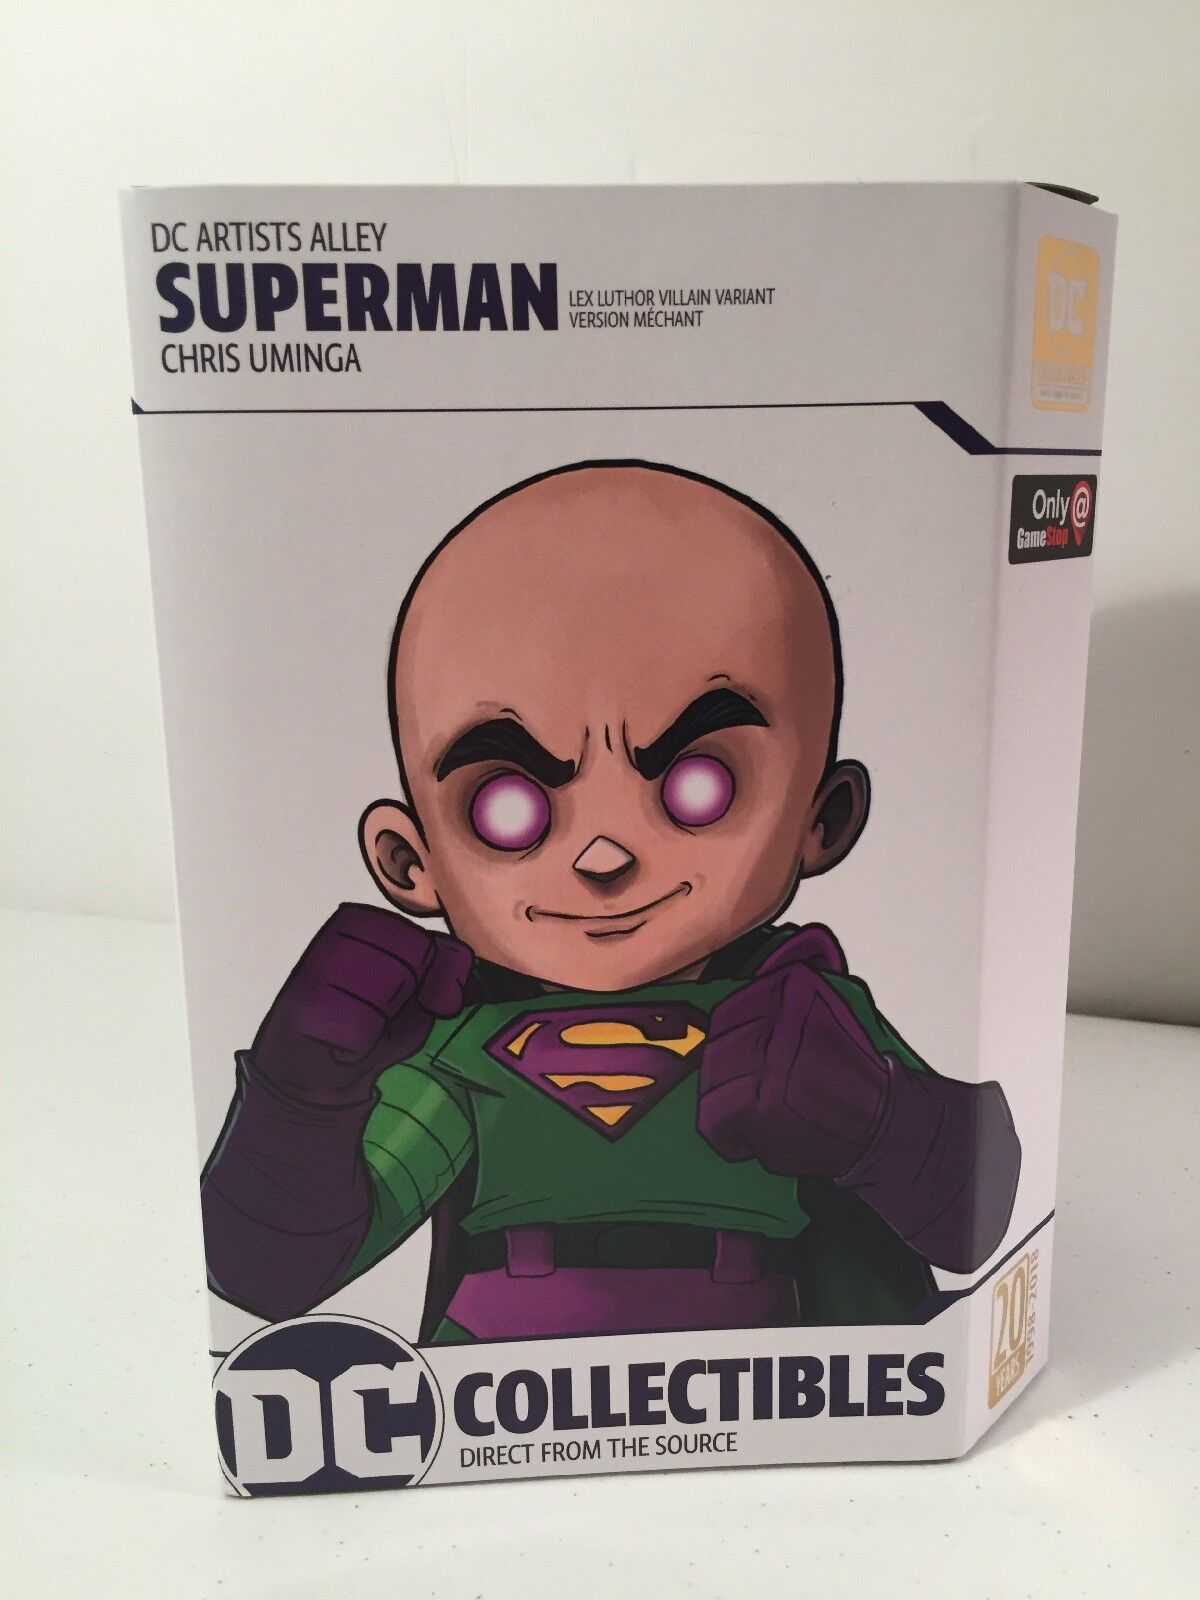 DC Artist Alley Superman 6.6-Inch PVC Collector Statue [Lex Luthor Villain] Rare